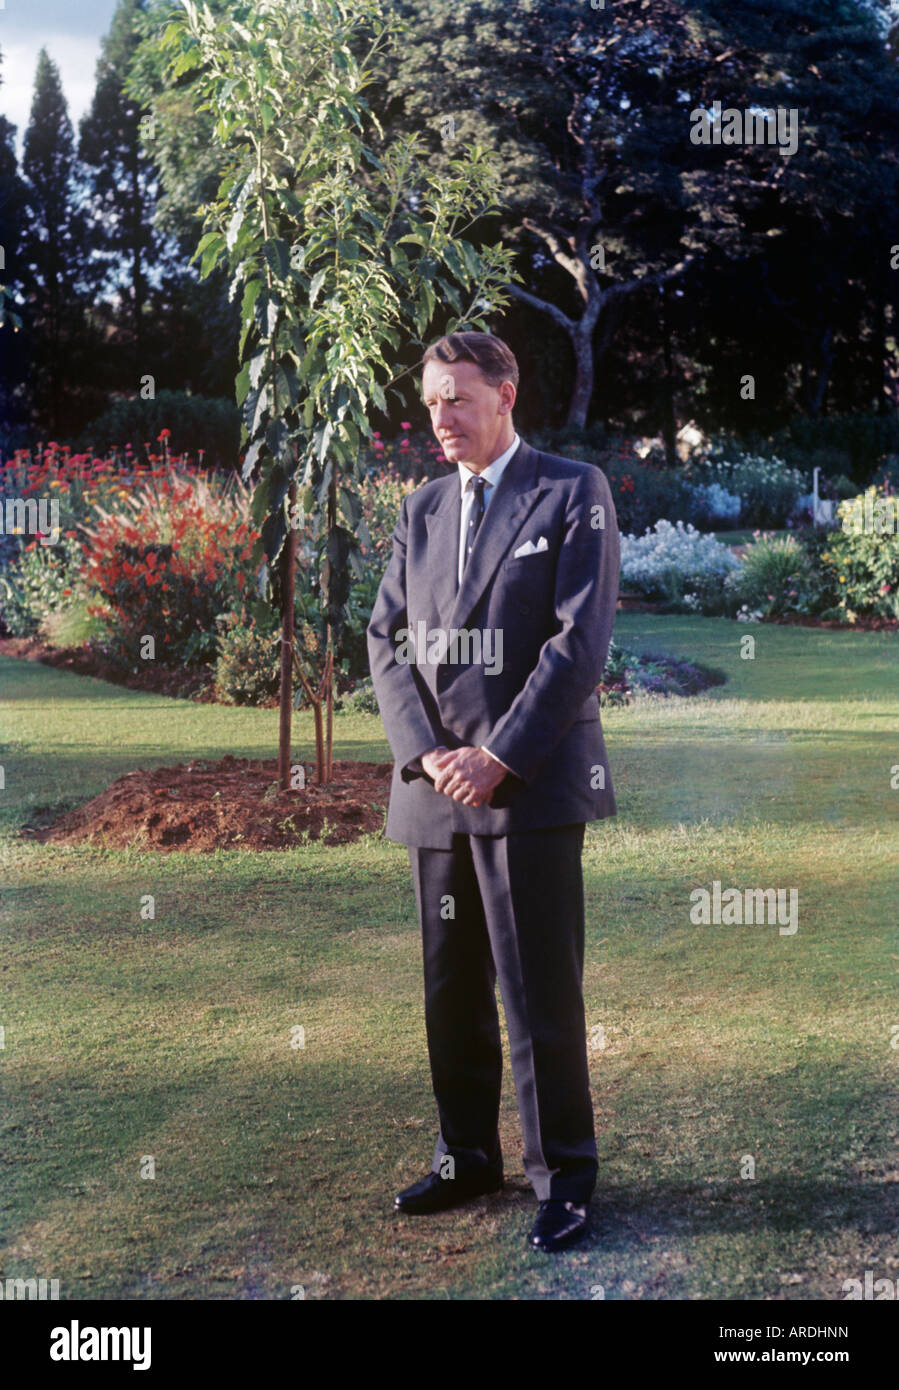 Ian Smith, prime minister of Rhodesia; in 1965 he declared UDI, unilateral declaration of independence, from Britain - Stock Image